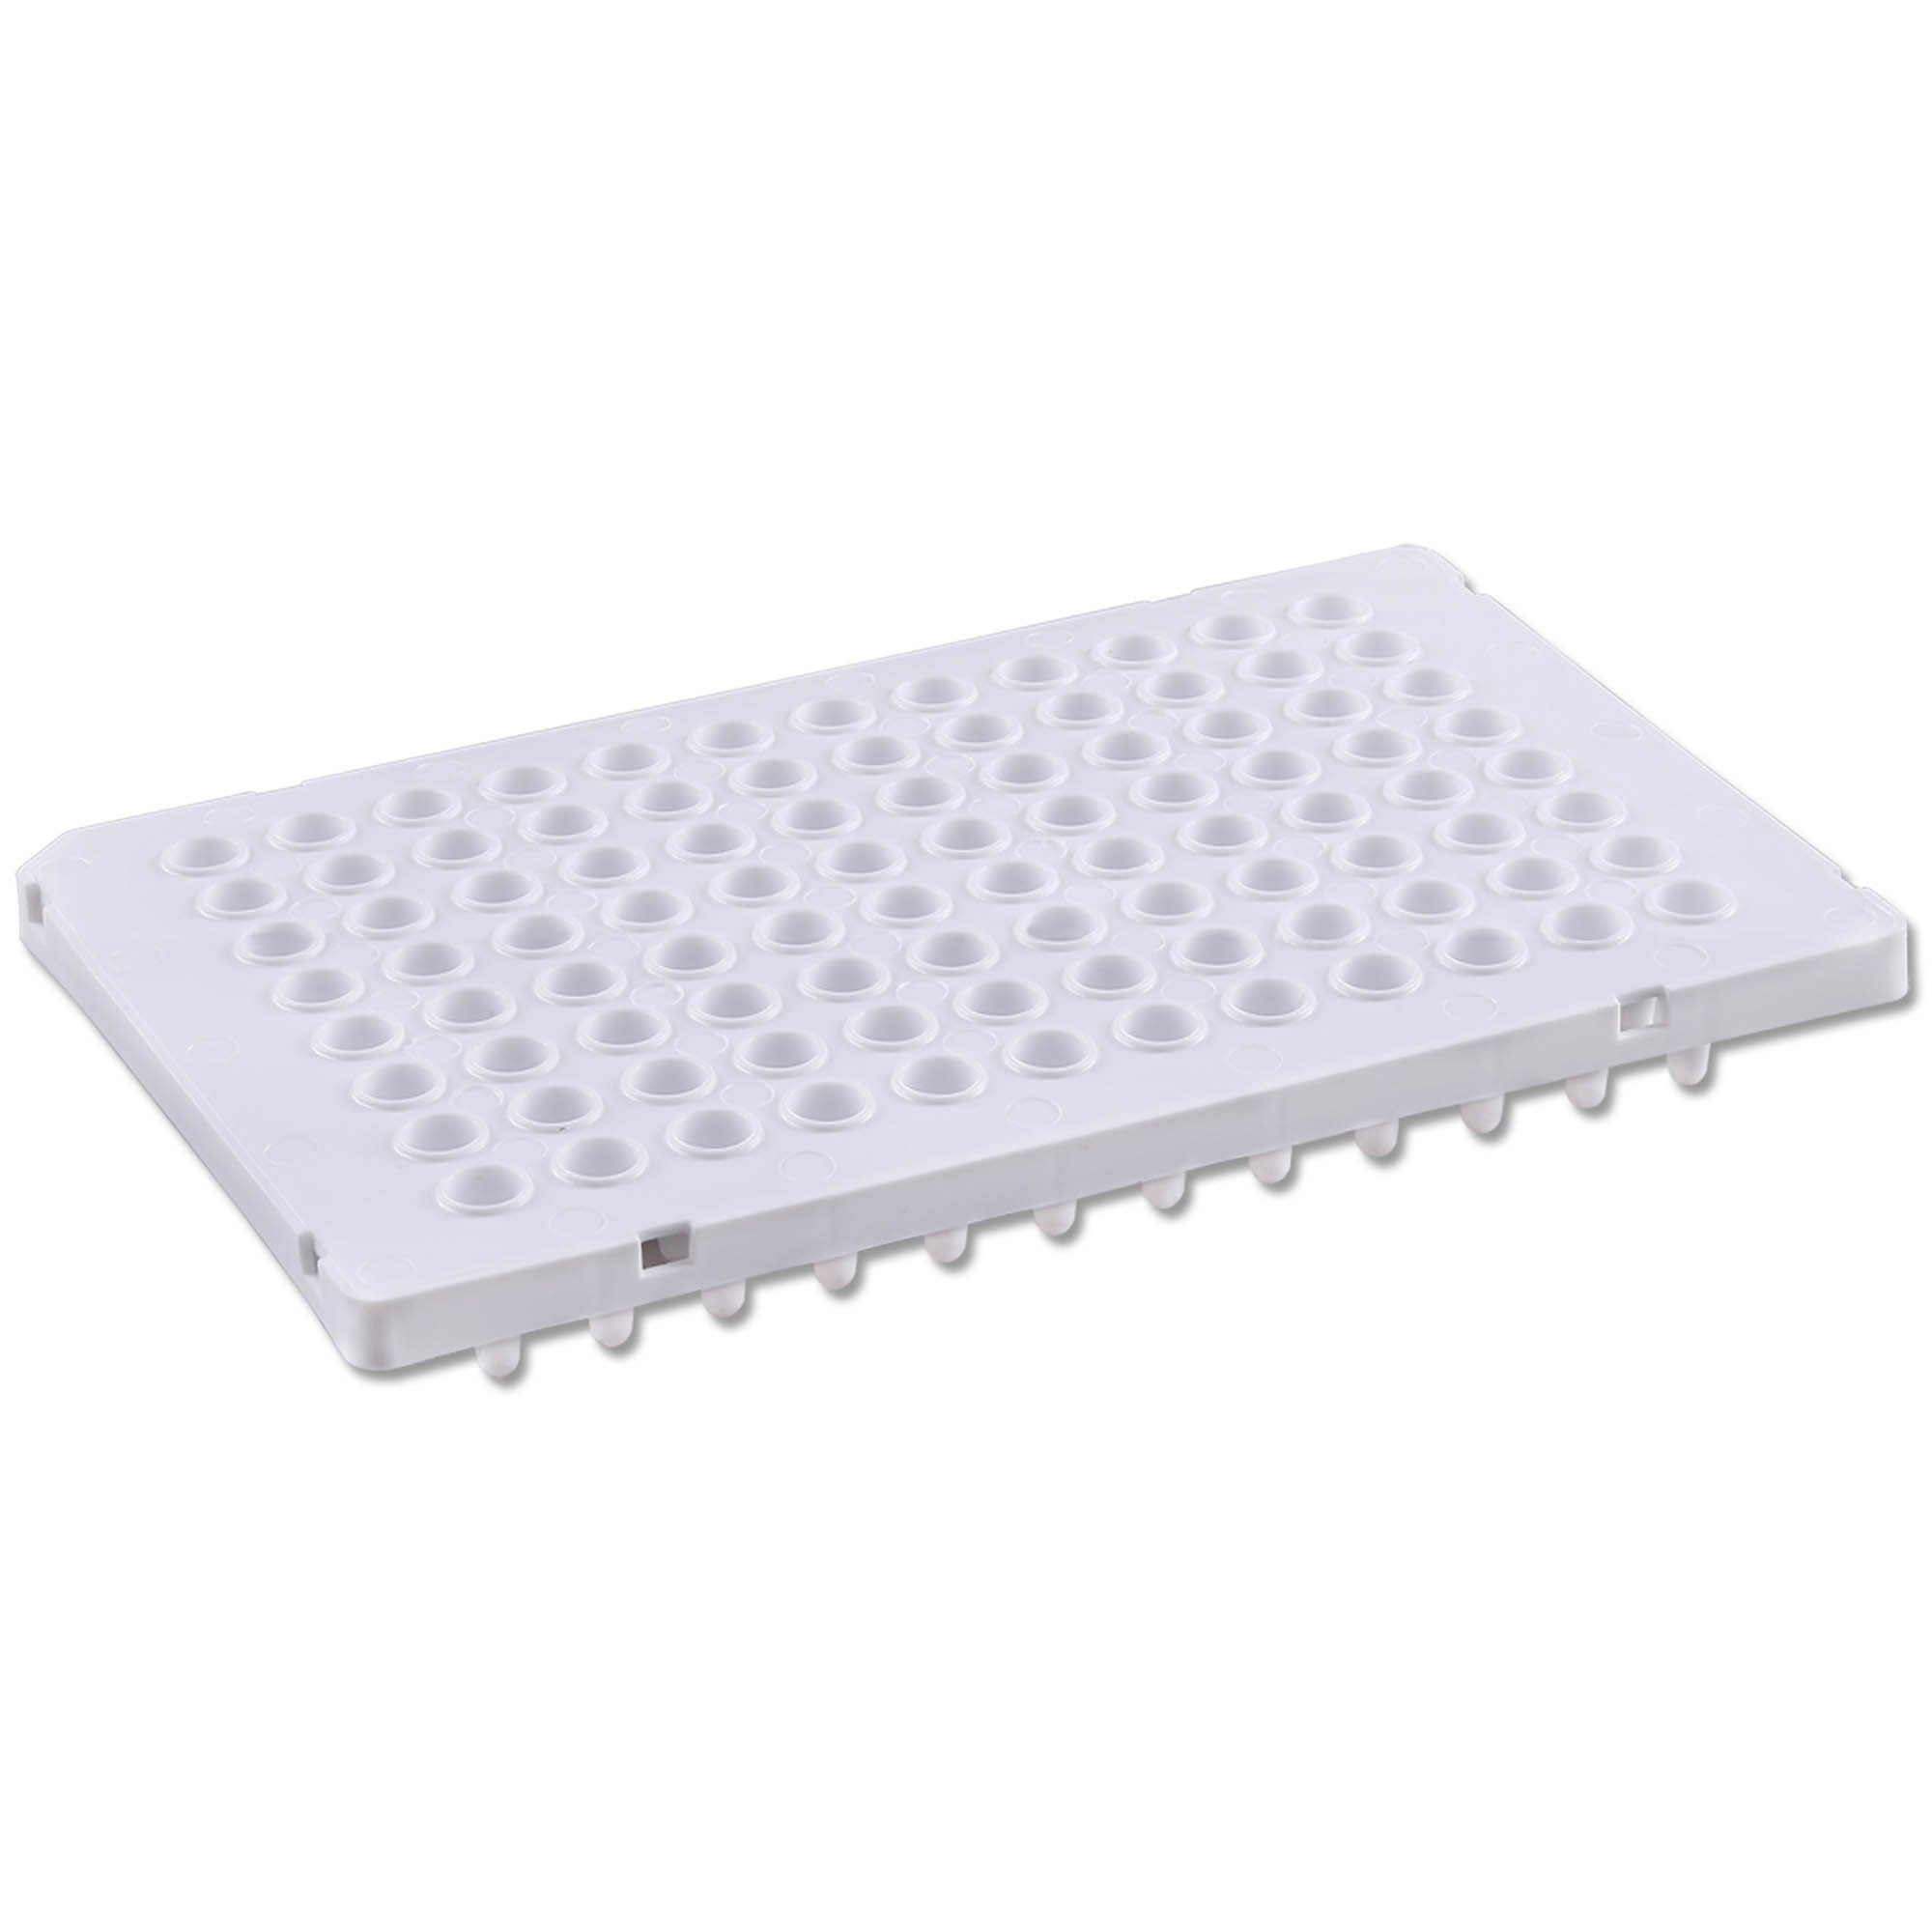 PureAmp Low Profile/Fast 96-Well x 0.1mL PCR Plates - Semi Skirted, White (Pack of 50)